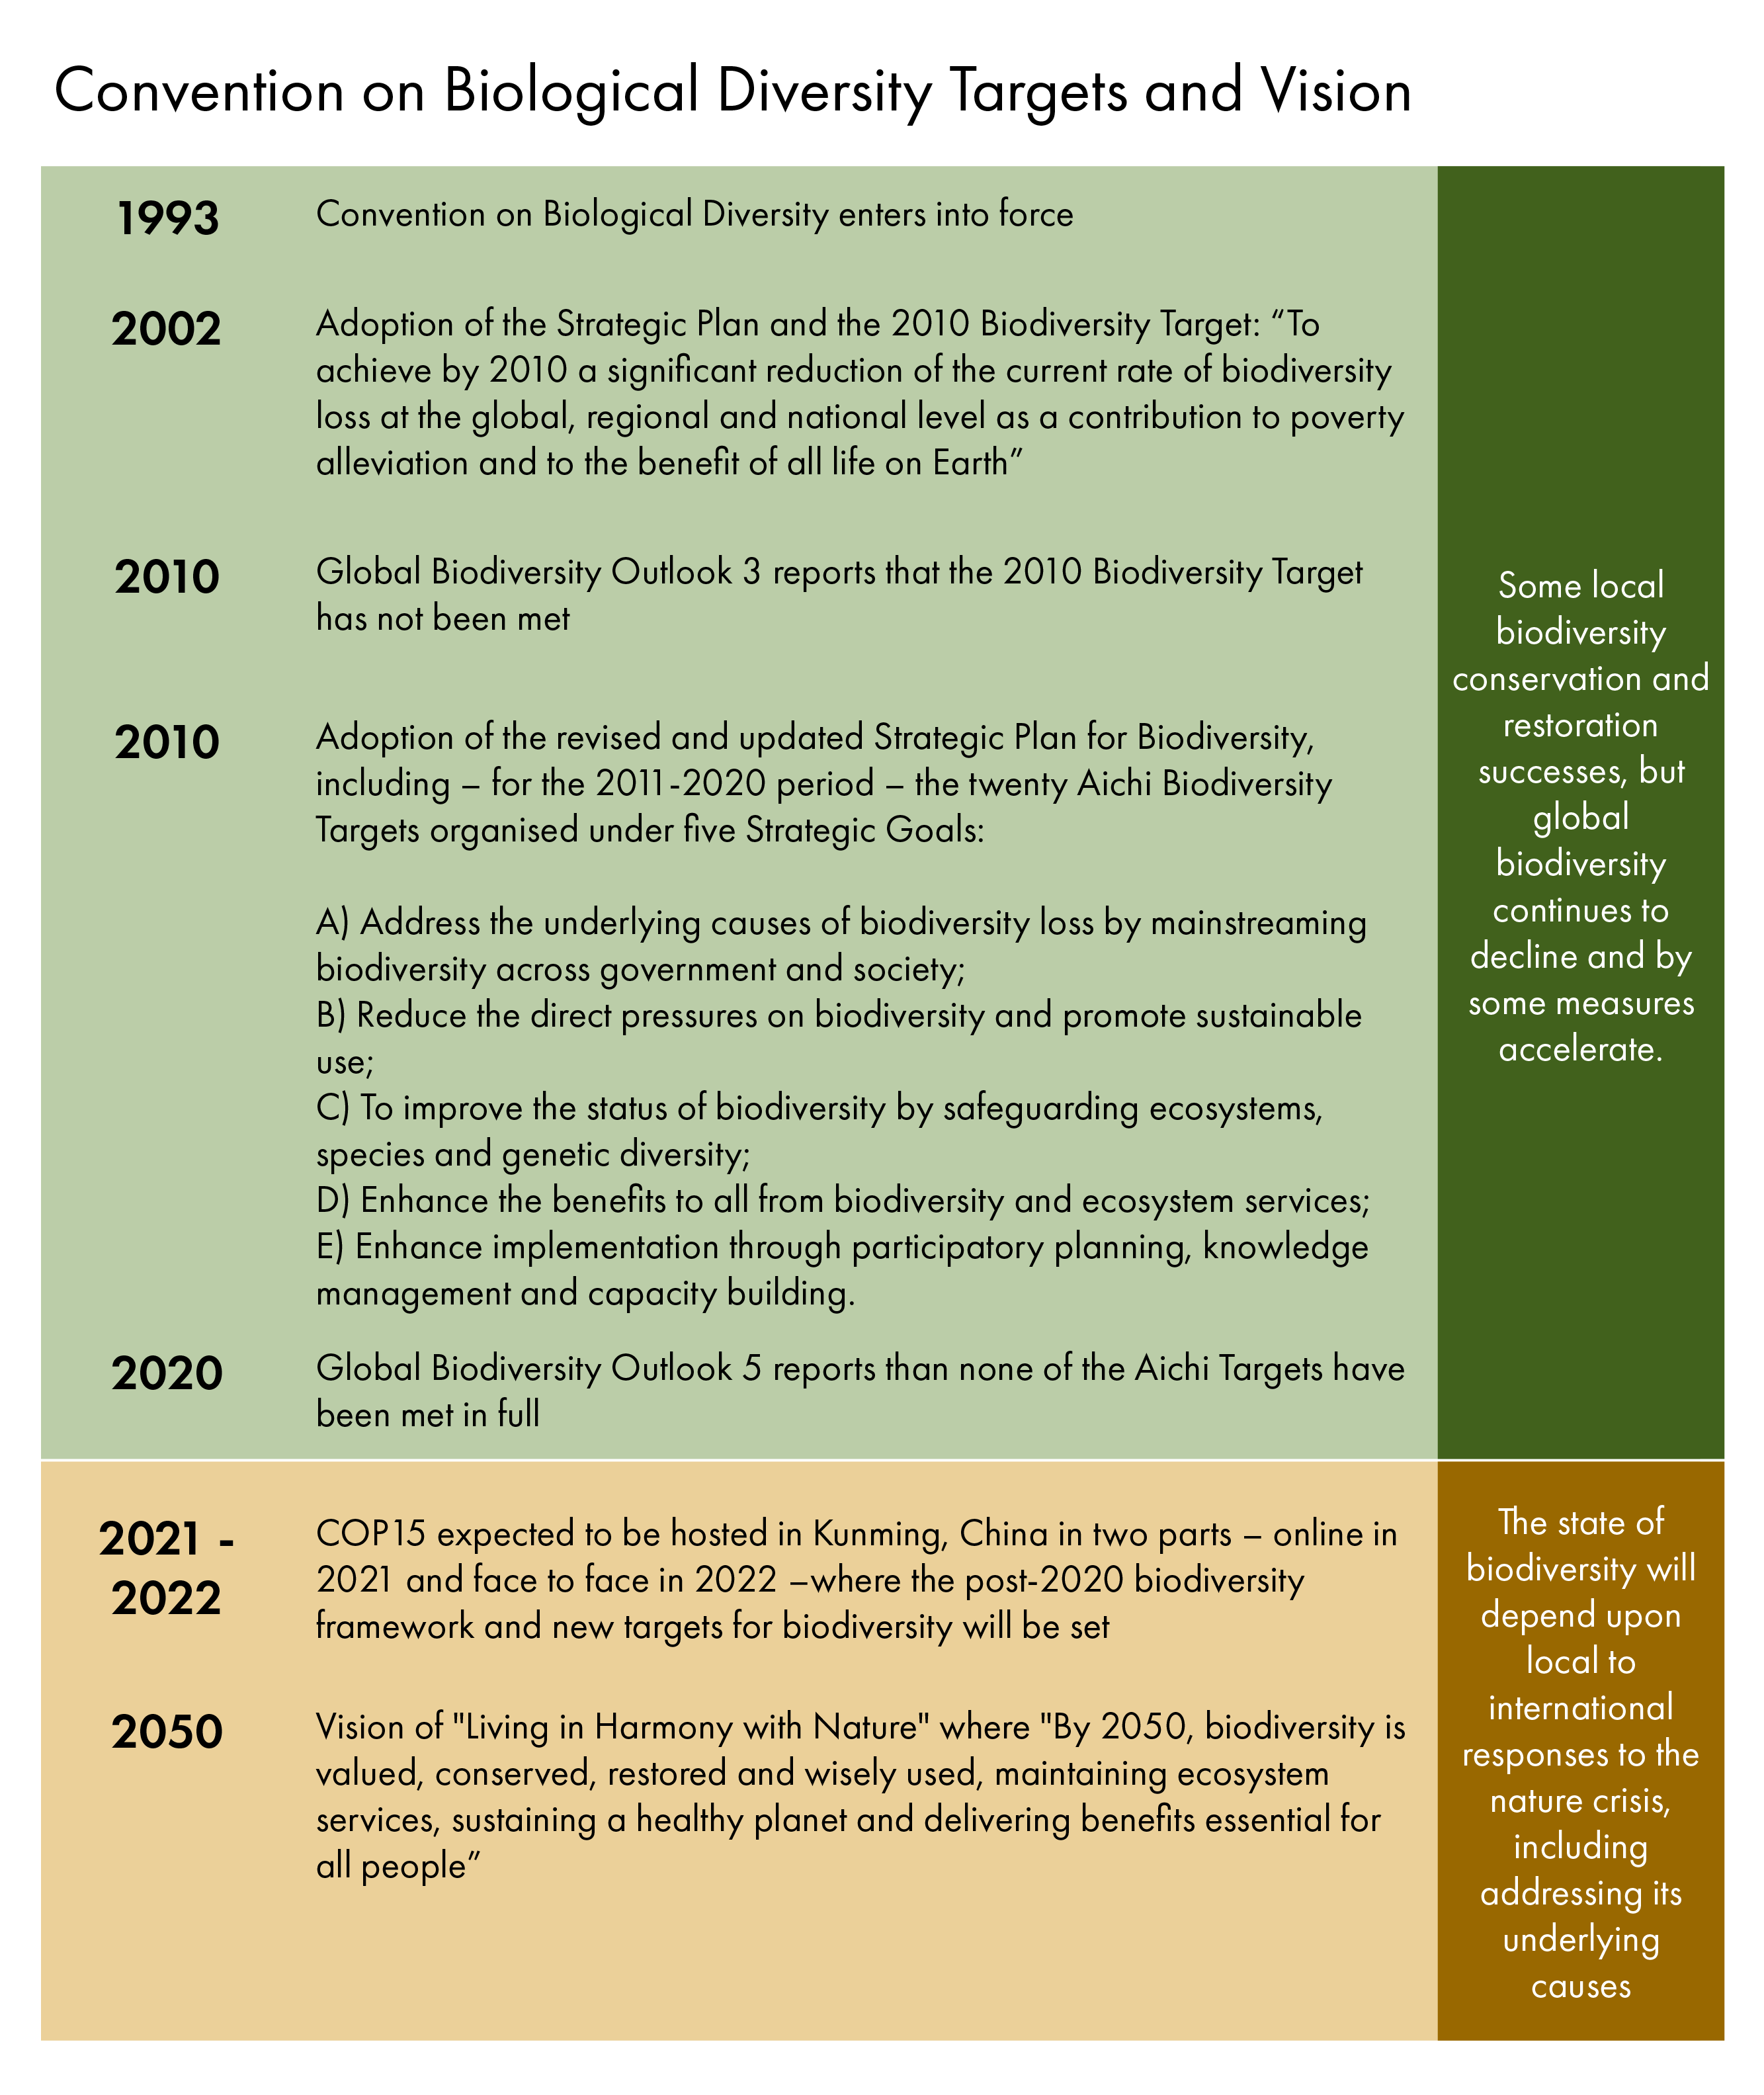 Timeline showing key events for the Convention on Biological Diversity since entering into force in 1993 and expectations ahead of its 2050 Vision of Living in Harmony with Nature. Thus far, biodiversity has continued to decline since the CBD came into force.